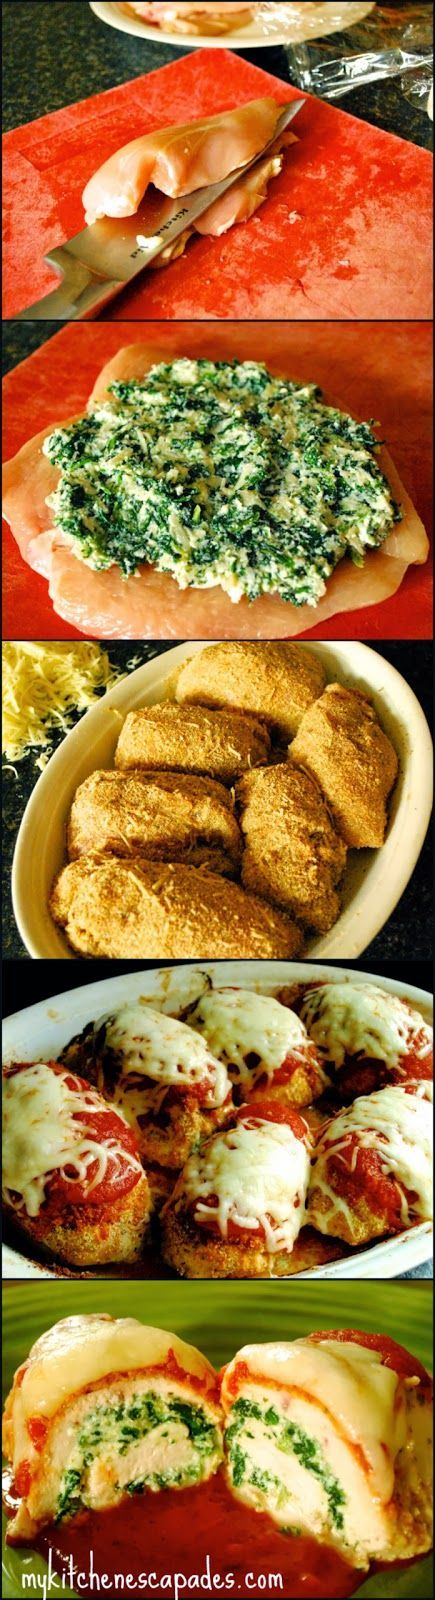 Chicken Parmigiana Rollatini - My Kitchen Escapades - this looks like a fancy dinner recipe but it is much easier than it looks!  A delicious low carb dinner option